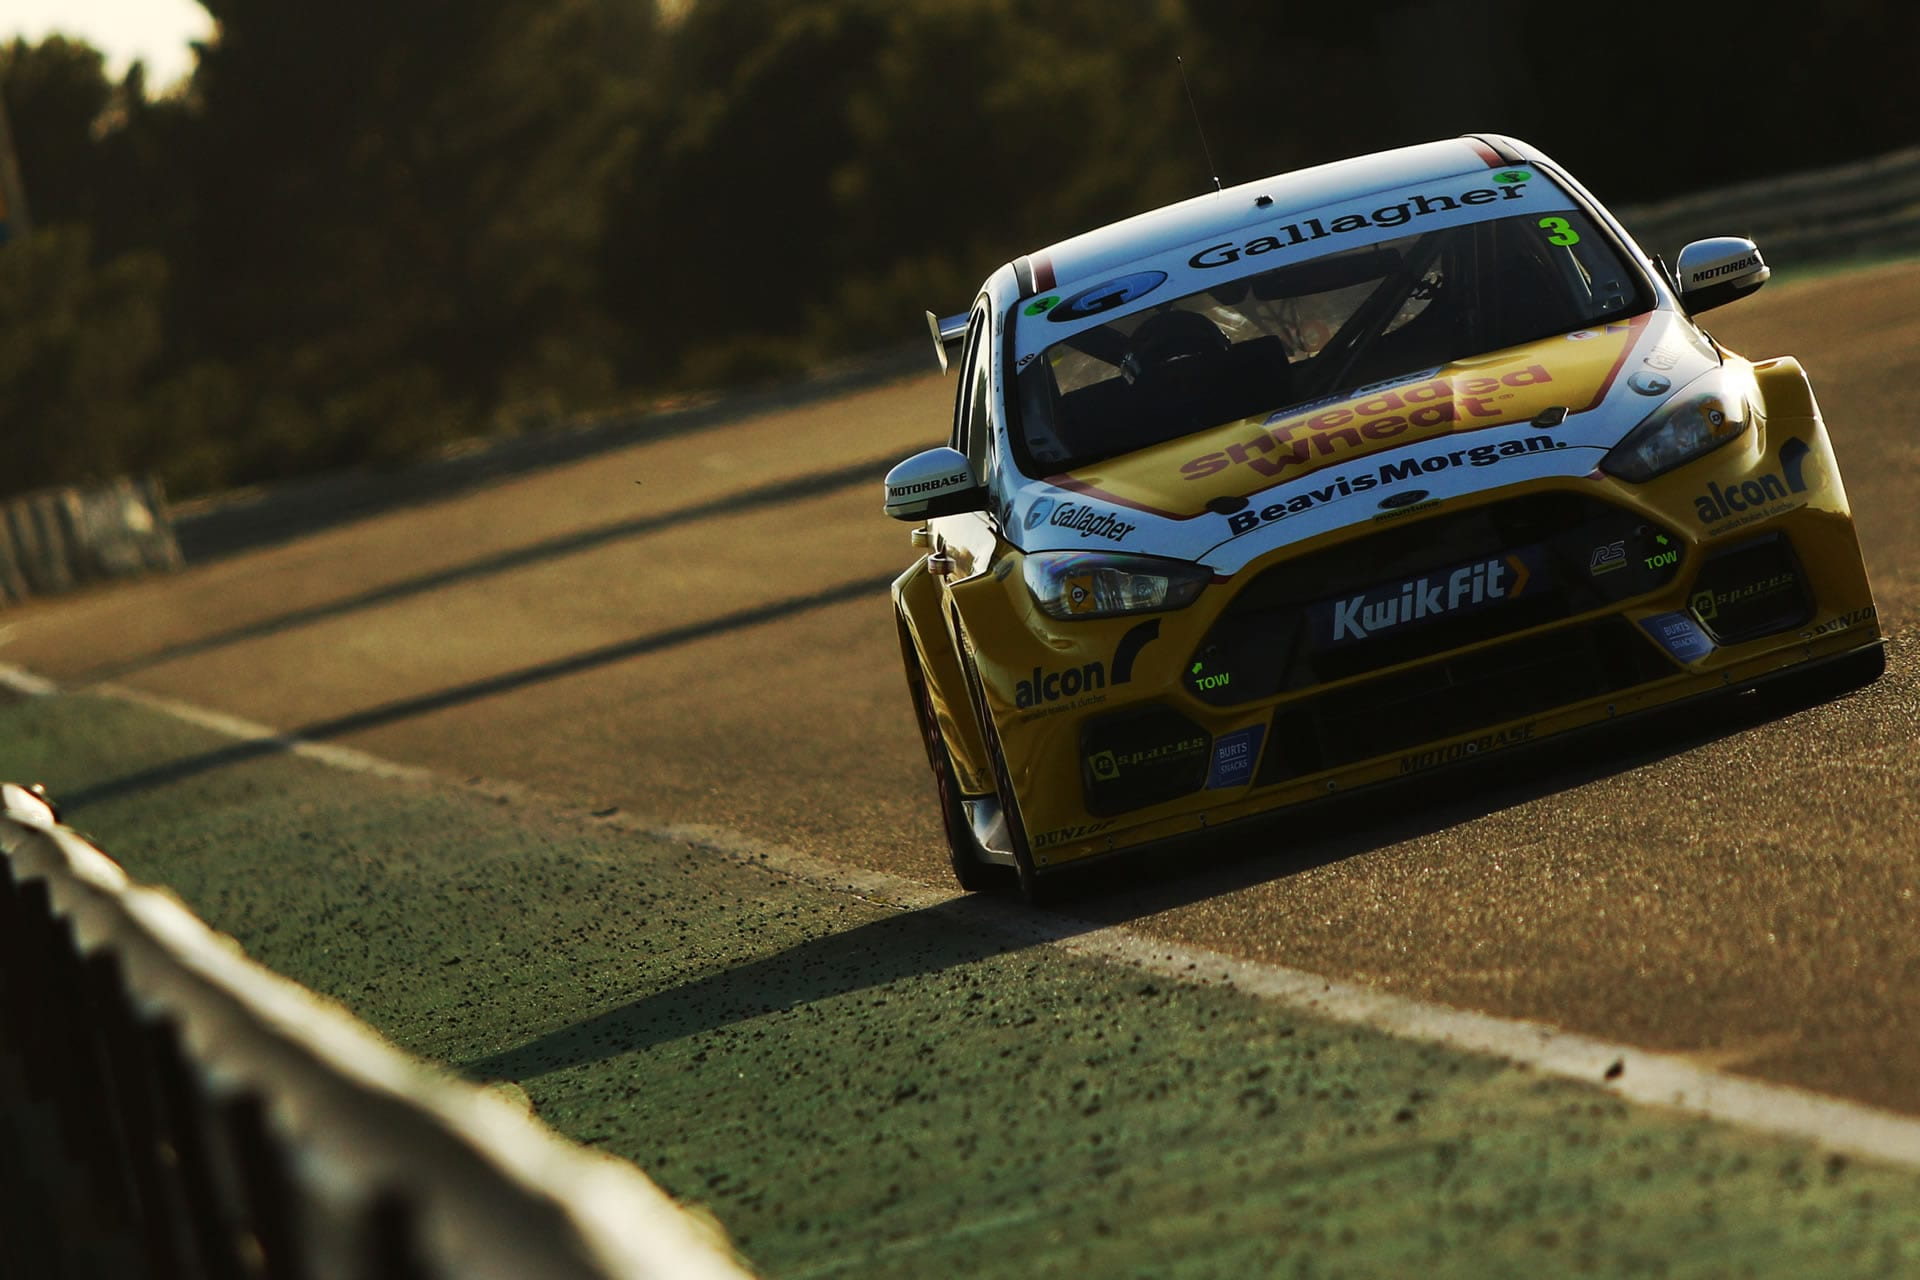 Latest Gallery from the Motorbase Performance a BTCC Team and Porsche CARRERA Cup GB Team